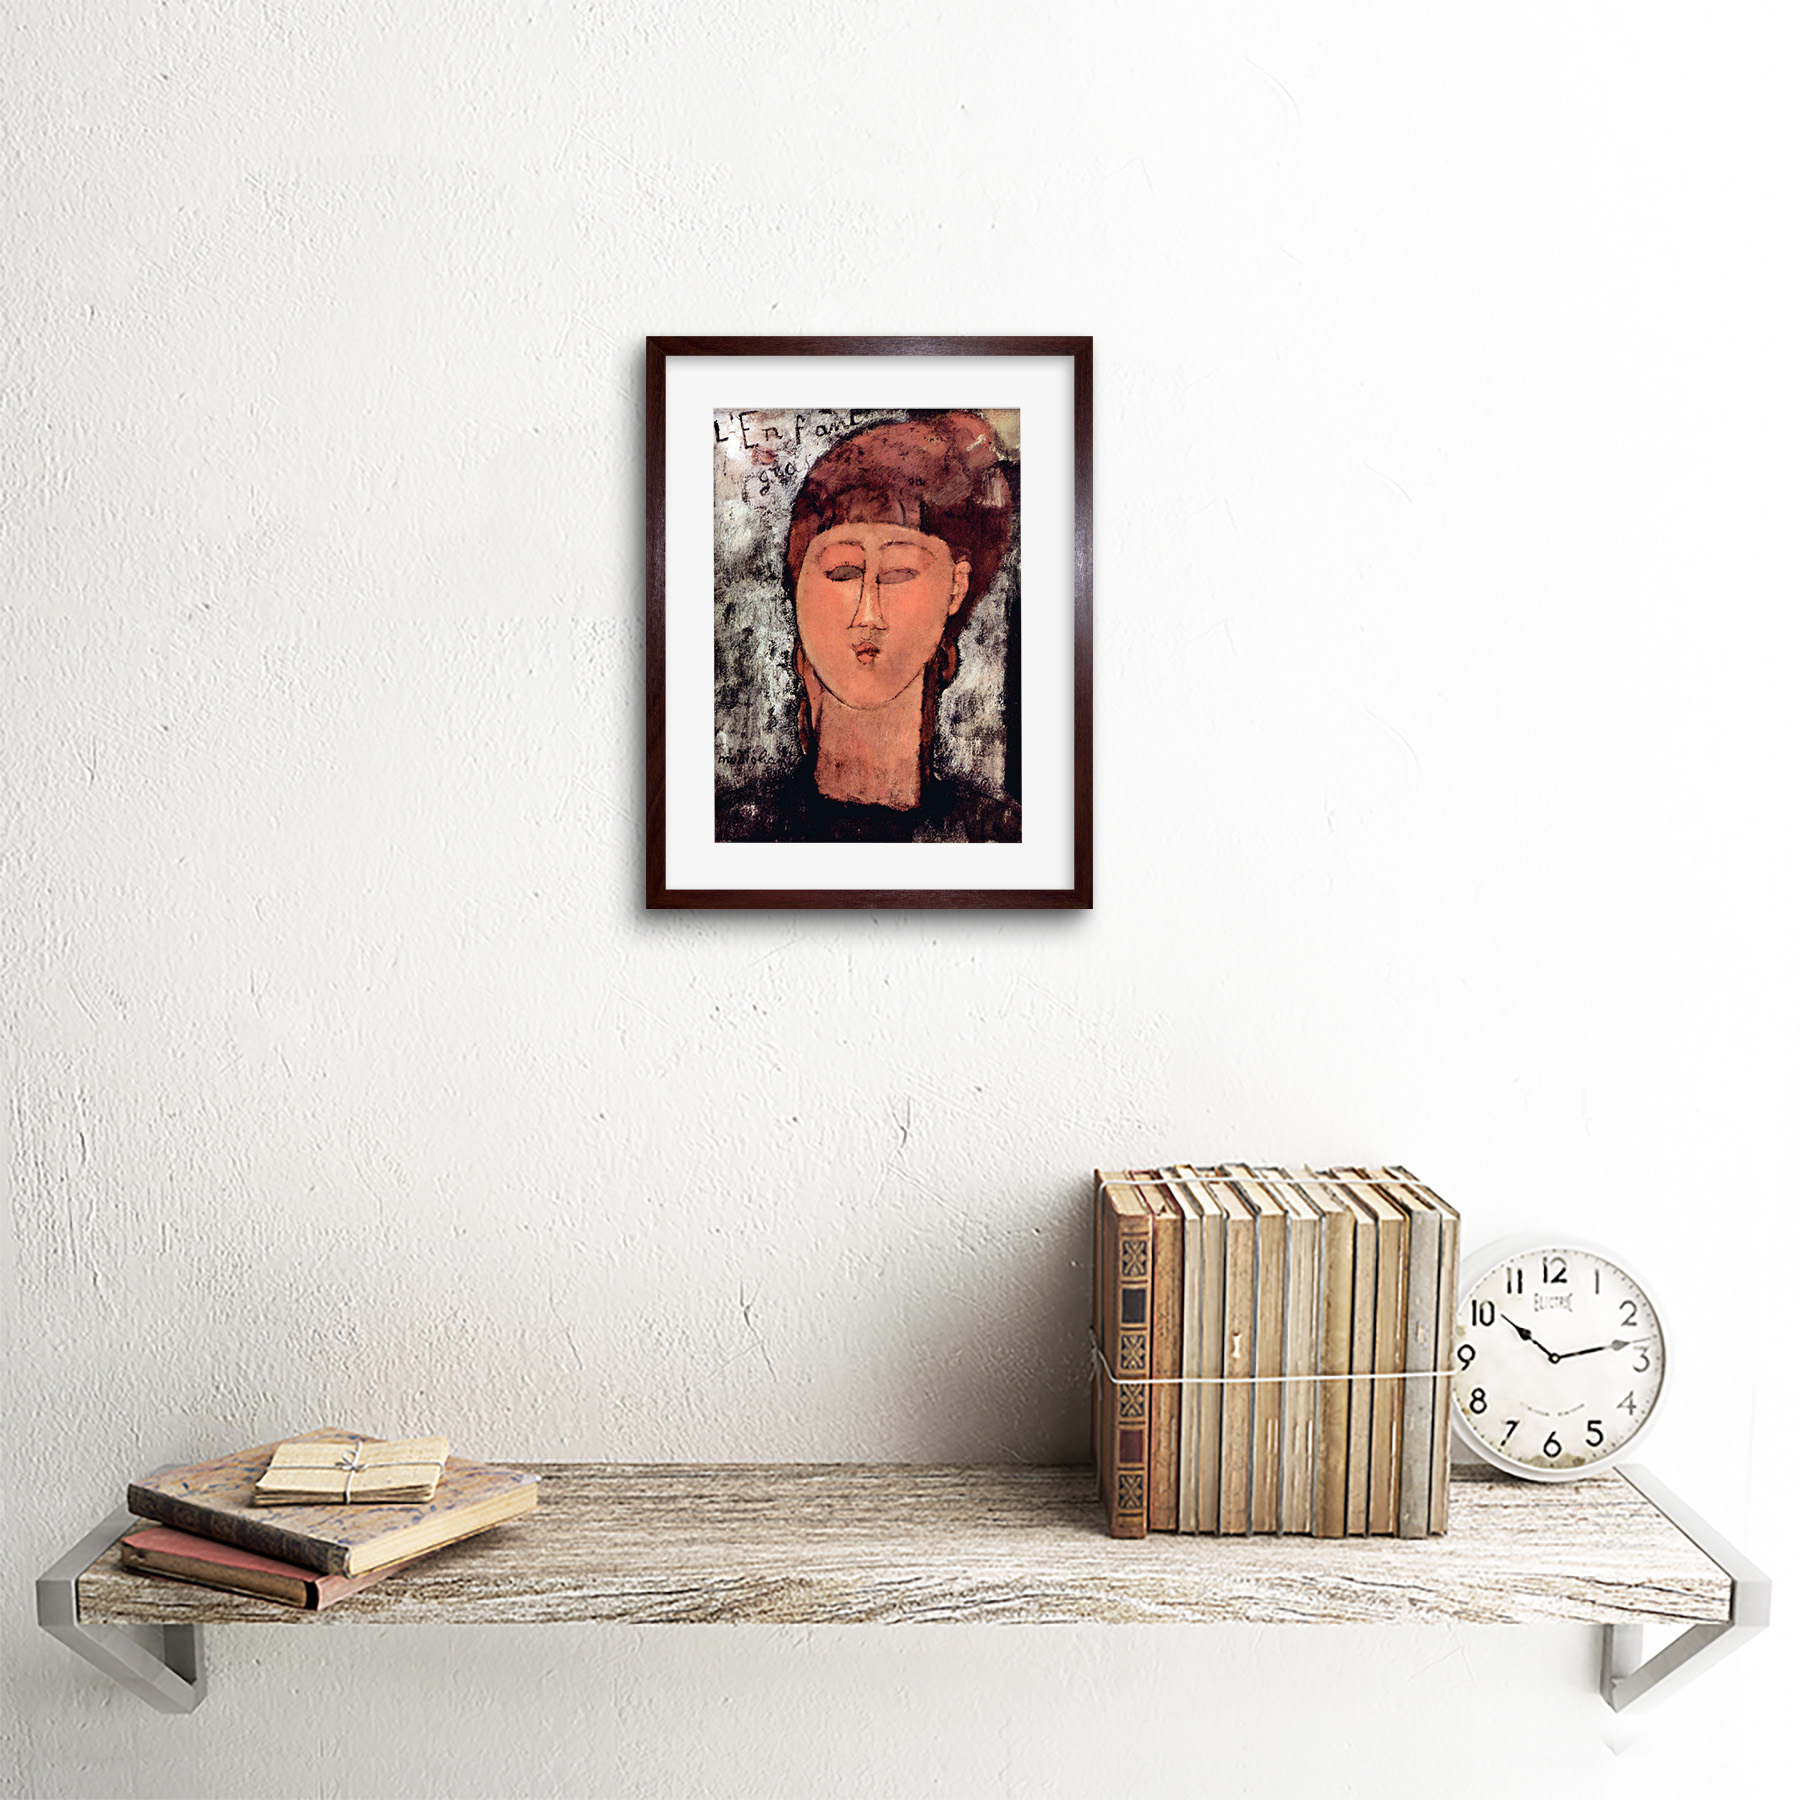 thumbnail 9 - Painting-Modigliani-Enfant-Gras-Old-Master-Framed-Picture-Art-Print-9x7-Inch